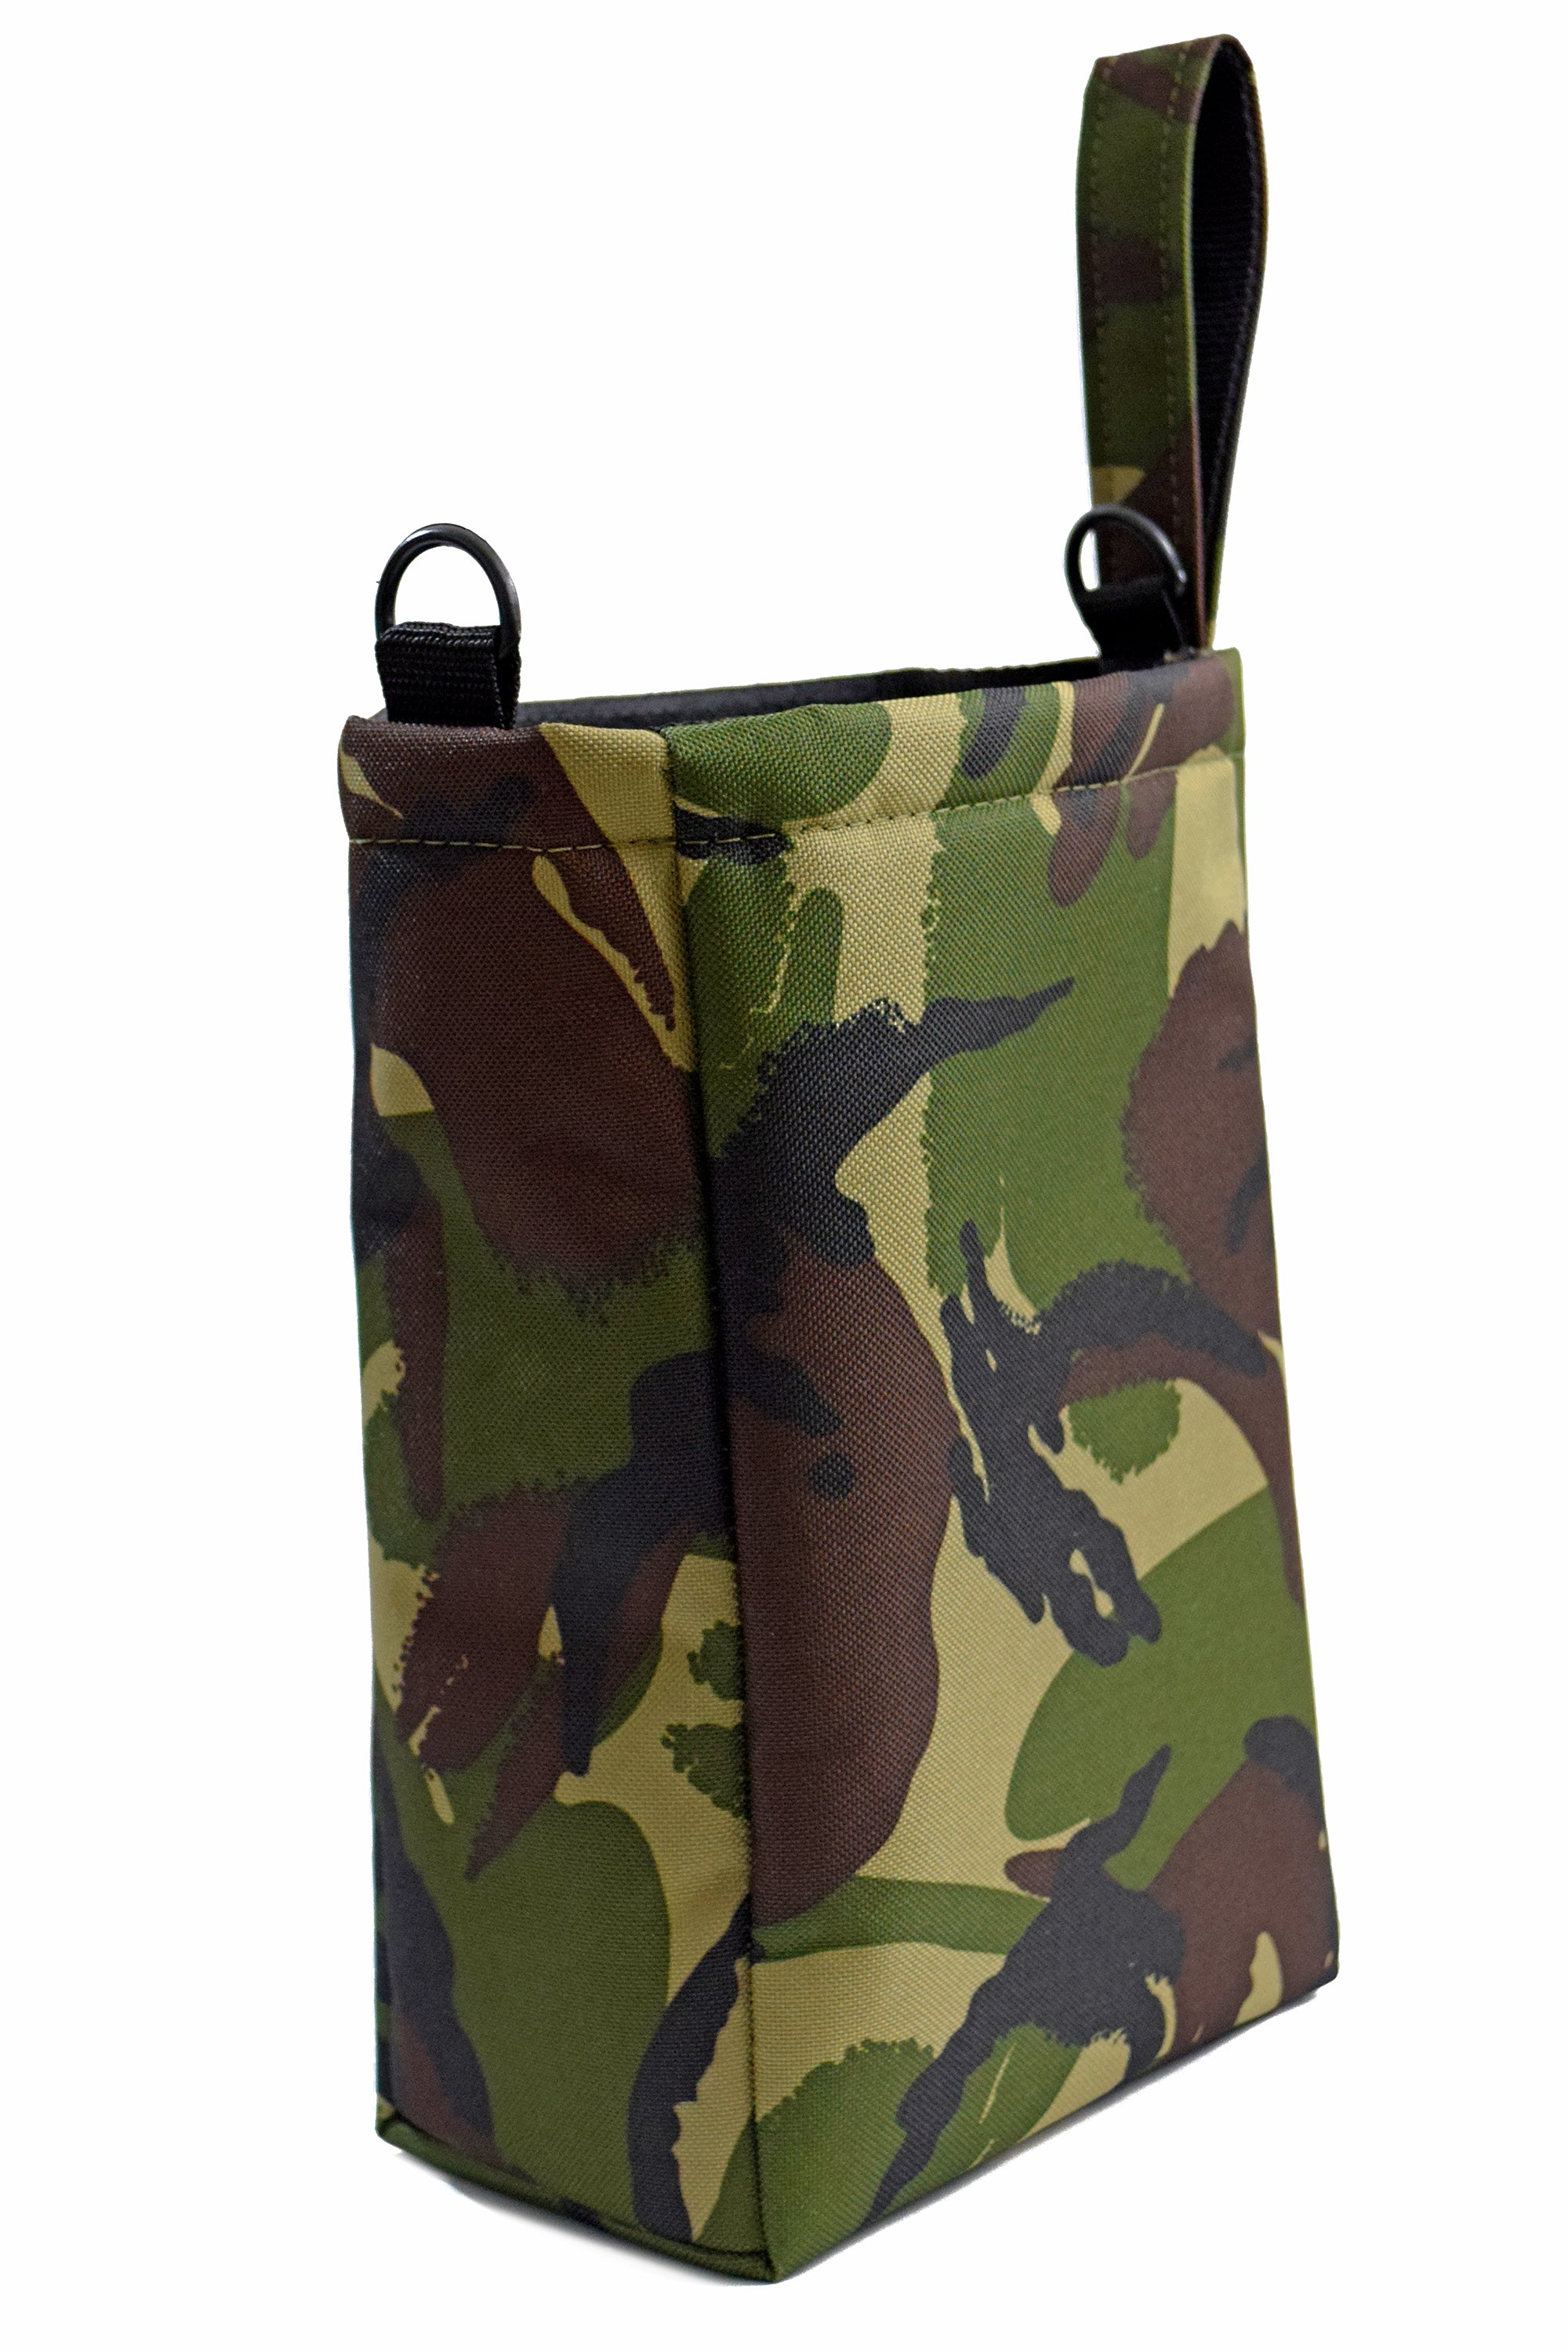 Goodstart Jones grab bag storage utility pouch camouflage